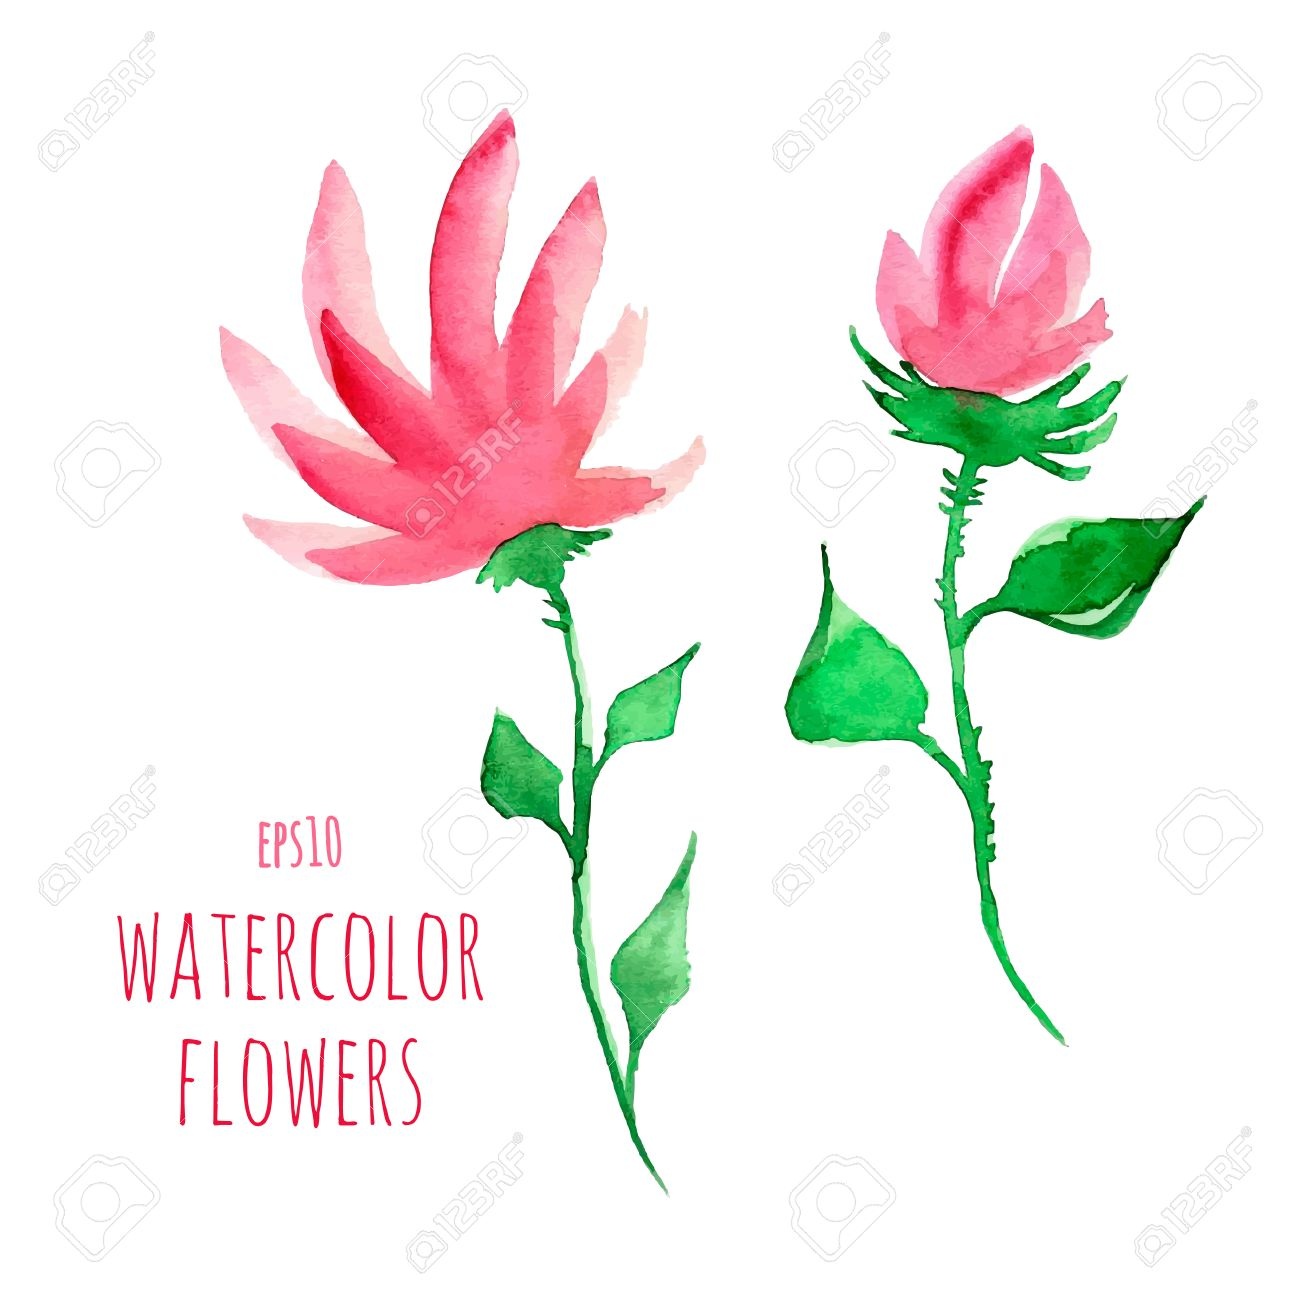 Watercolor Flowers On A Transparent Background Royalty Free Cliparts